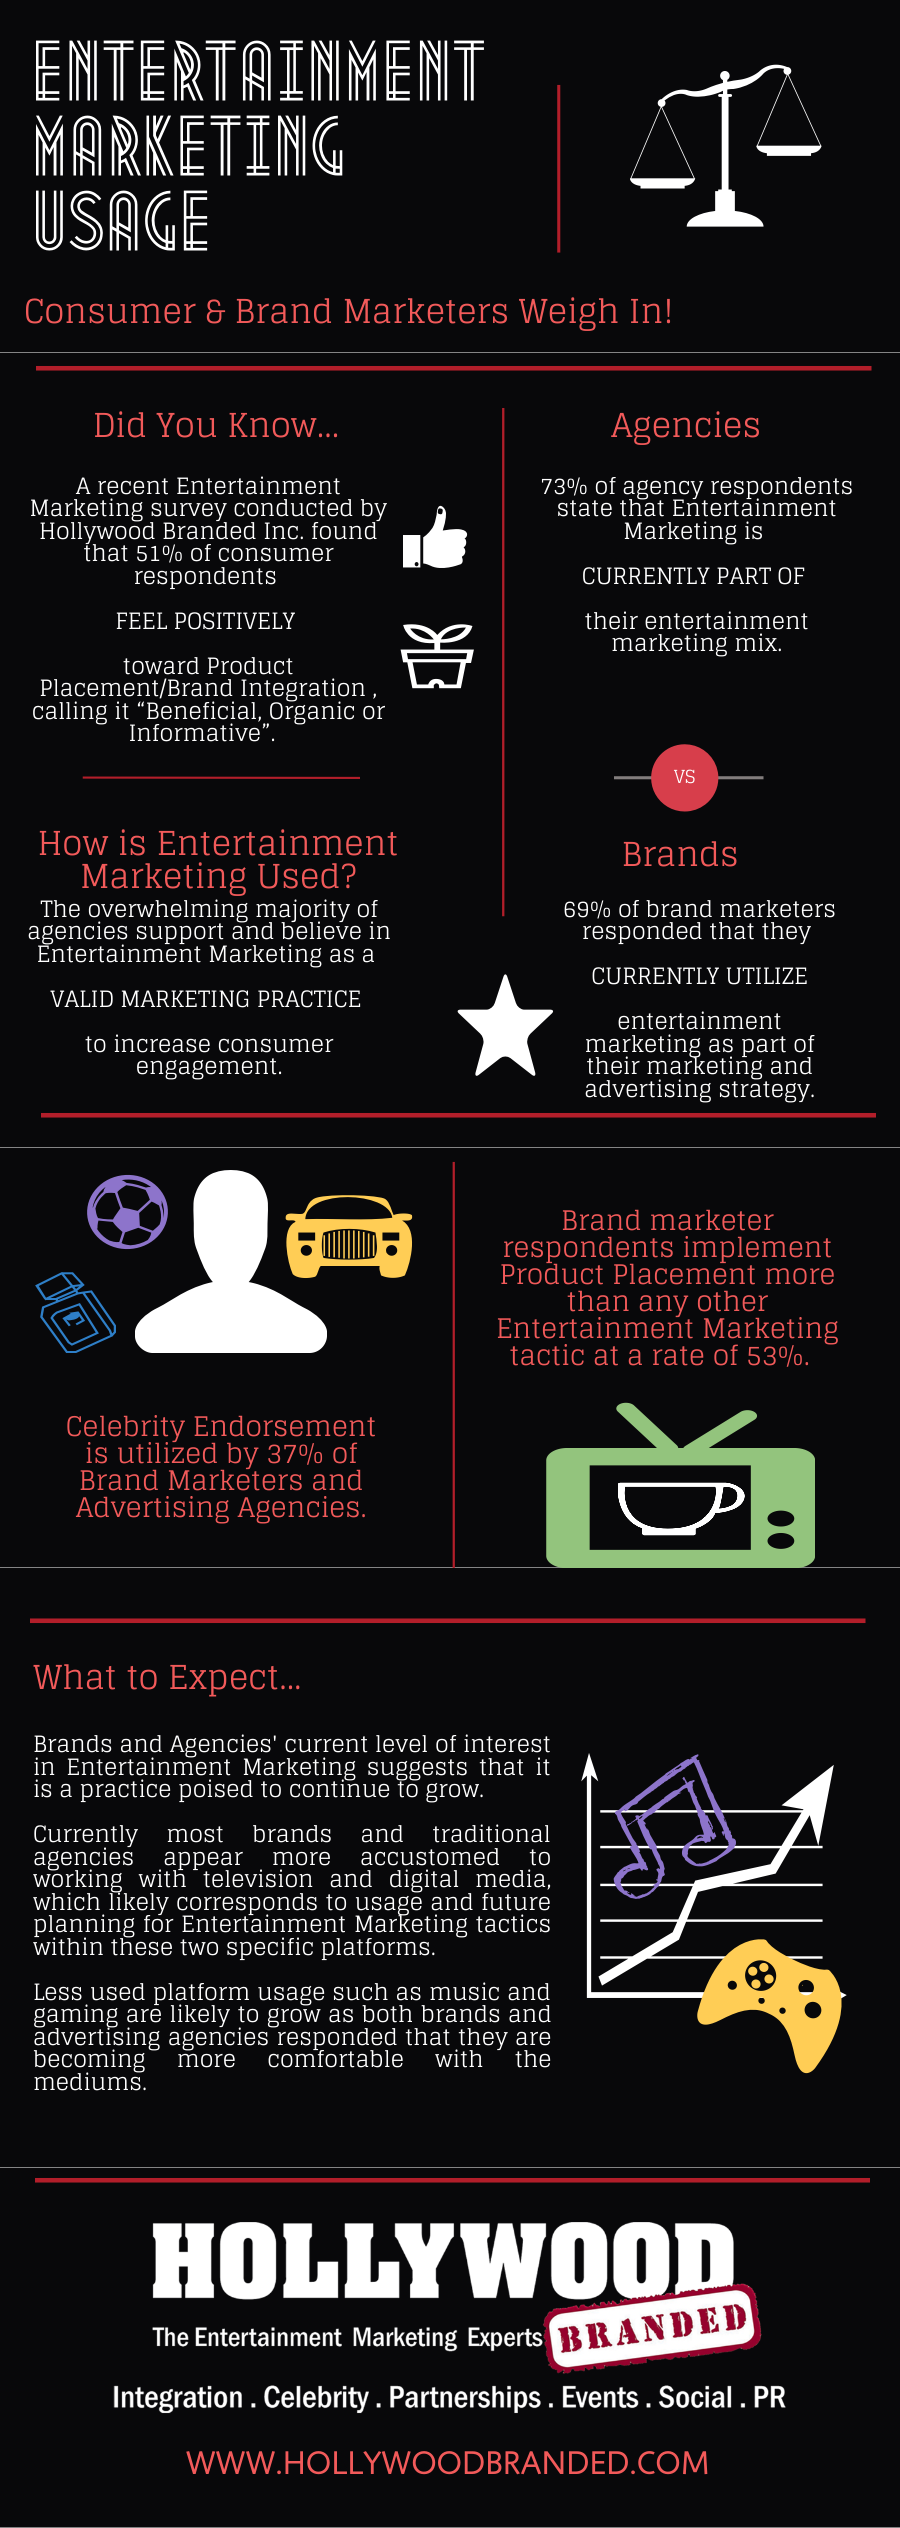 Marketing Strategies of Entertainment Marketing Usage To Increase Sales